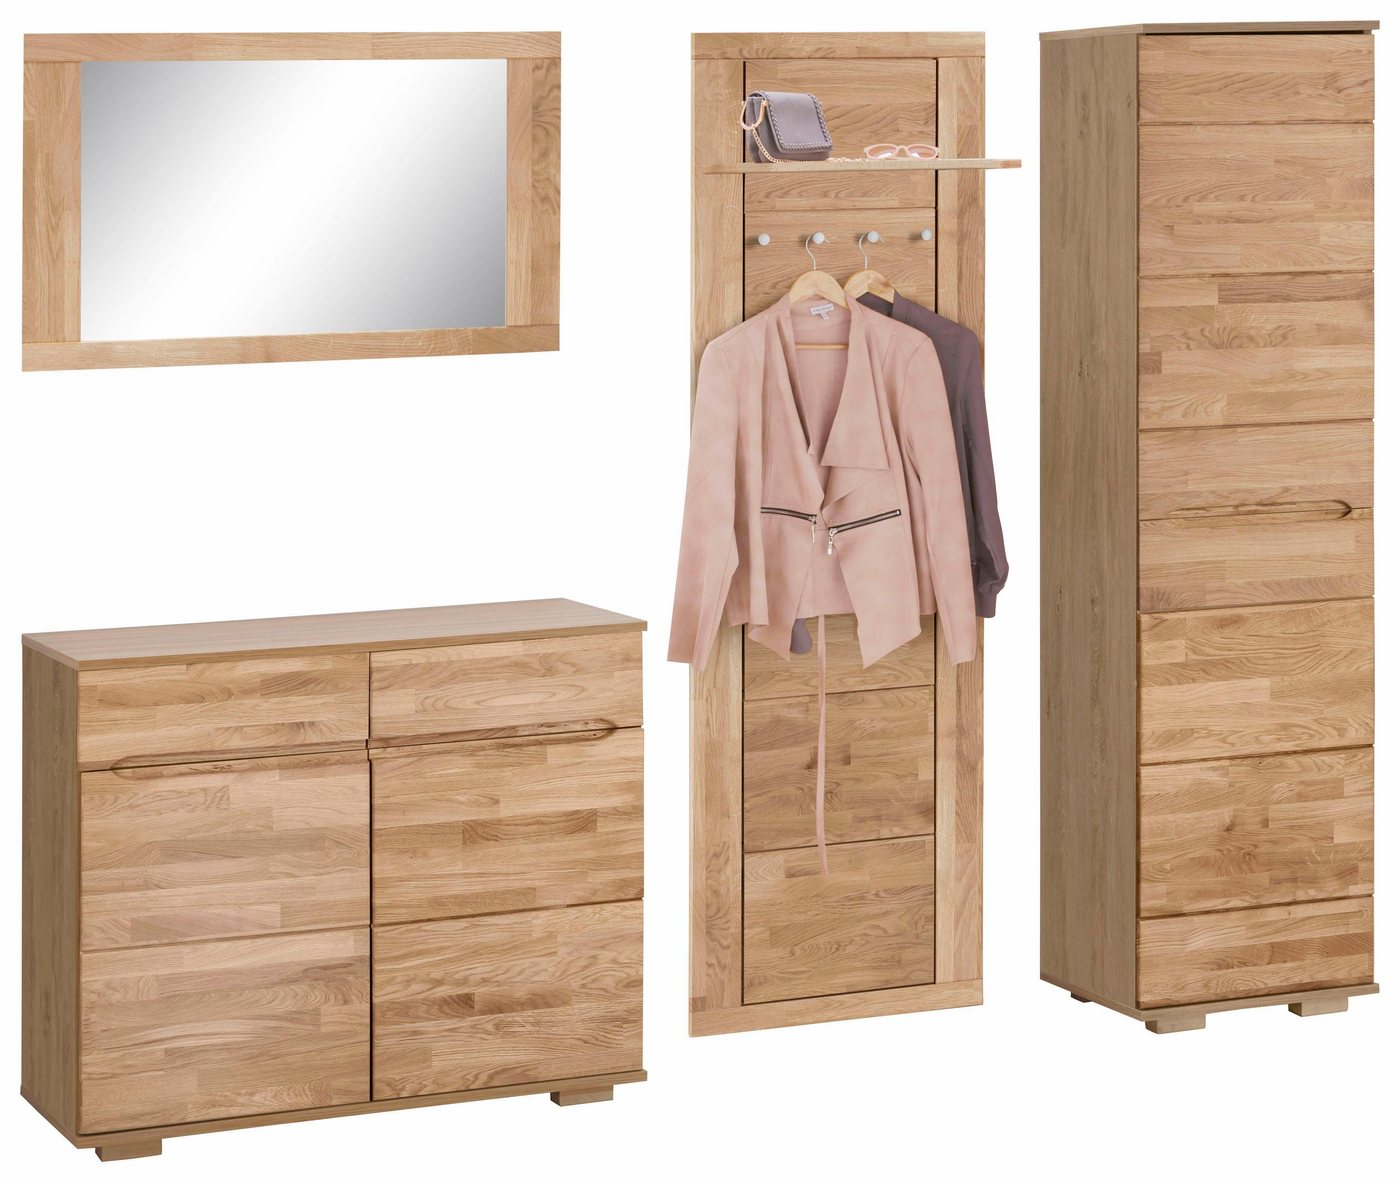 garderobe buche massiv garderobe teil massiv buche leinkenjost serie 600 garderobe buche. Black Bedroom Furniture Sets. Home Design Ideas